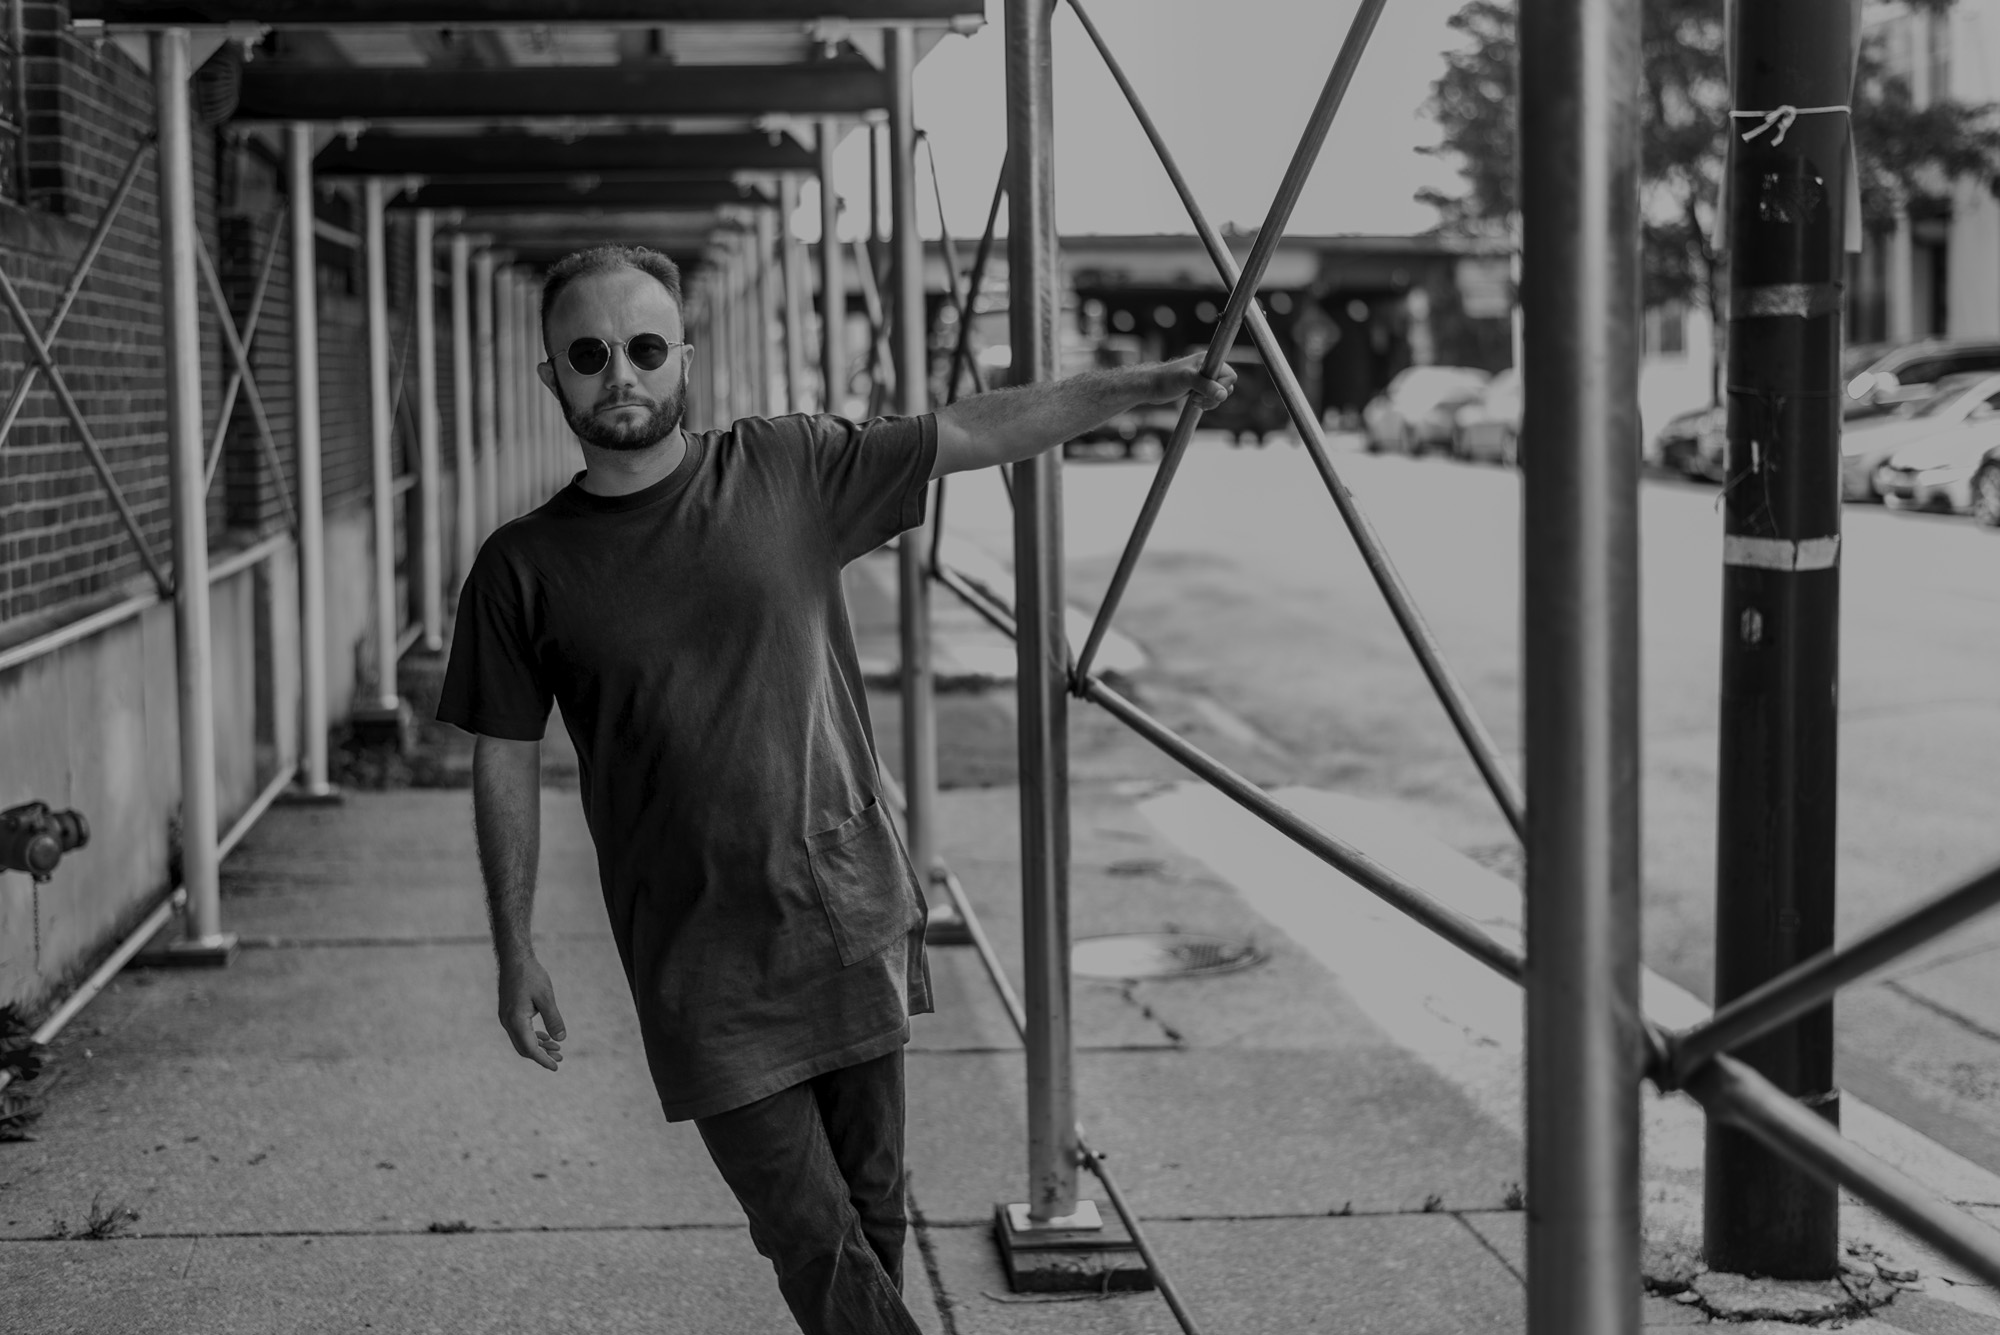 Image: Elliot stands under scaffolding along a brick building, with the street to the right. One hand holds onto a post on the scaffolding, and he's leaning out to the left towards the frame. Photo is in black and white. Photo by Ryan Edmund.